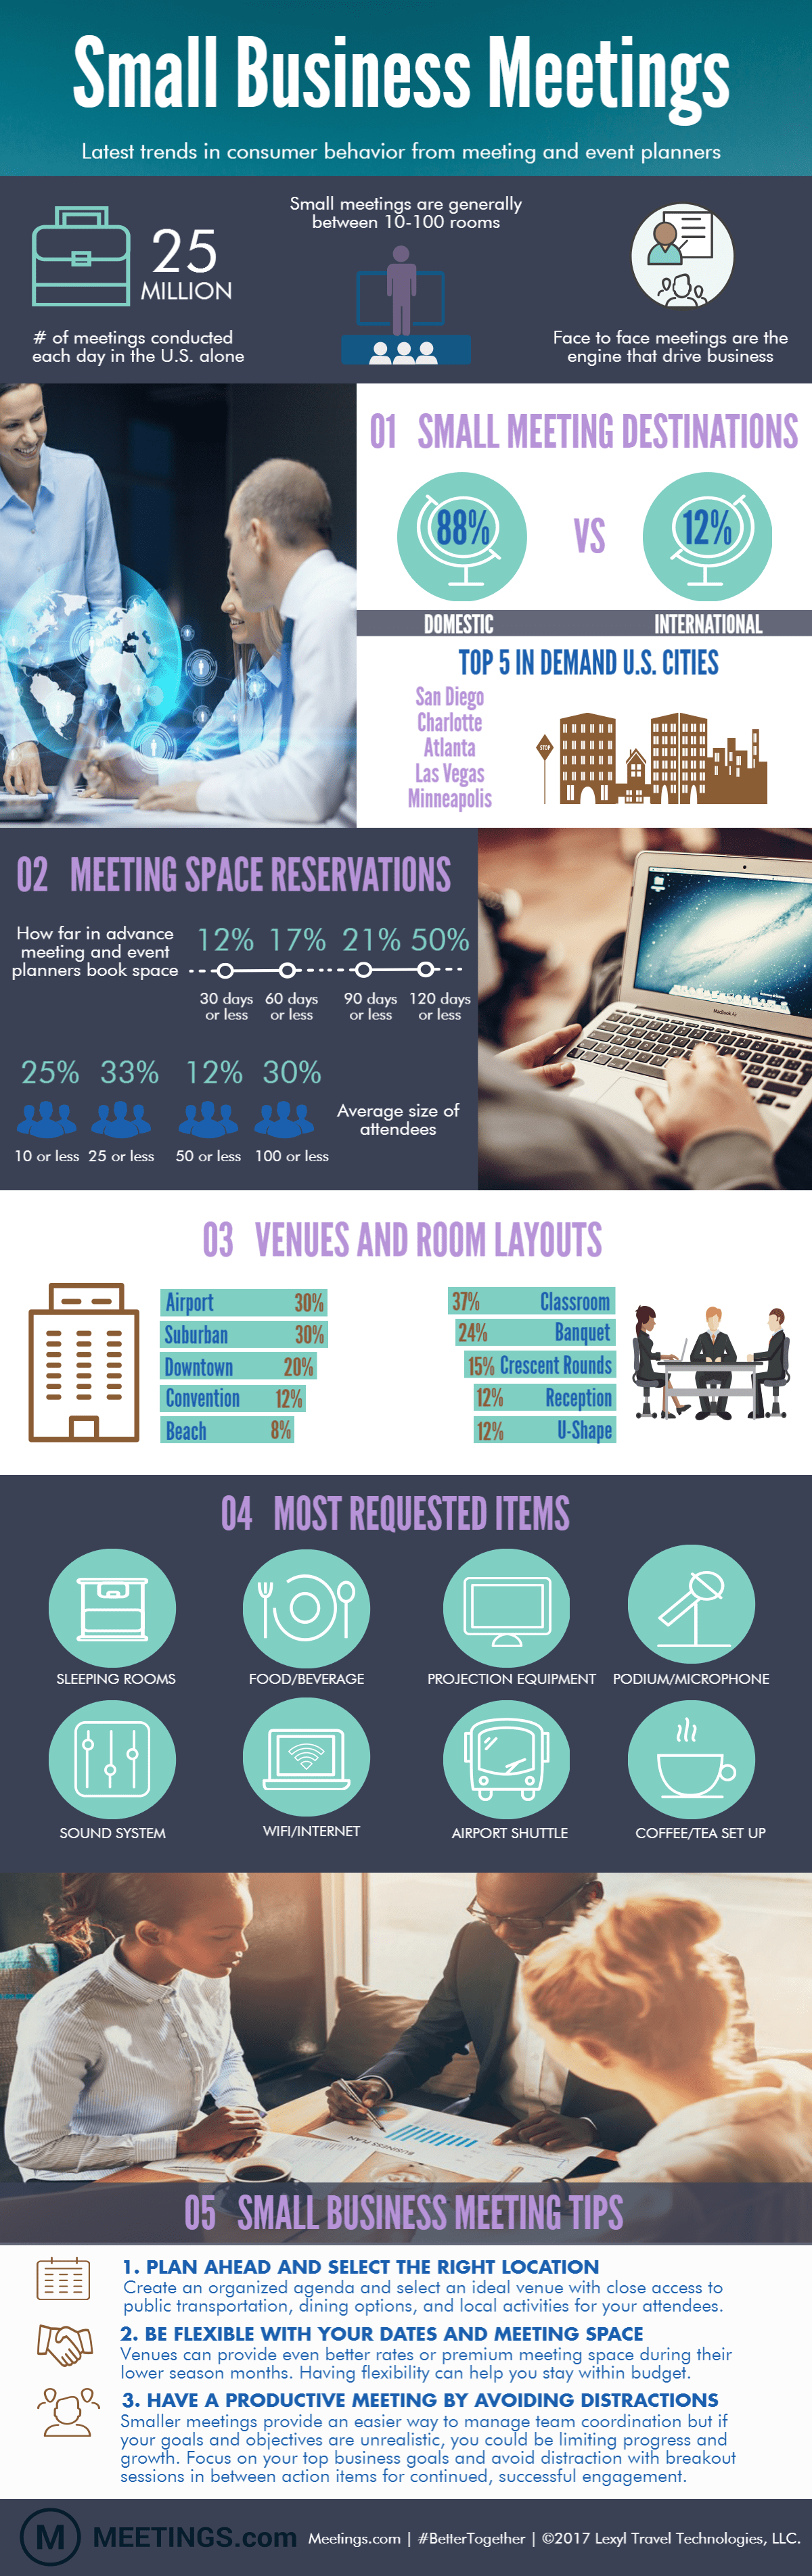 Small Business Meetings USA Infographic